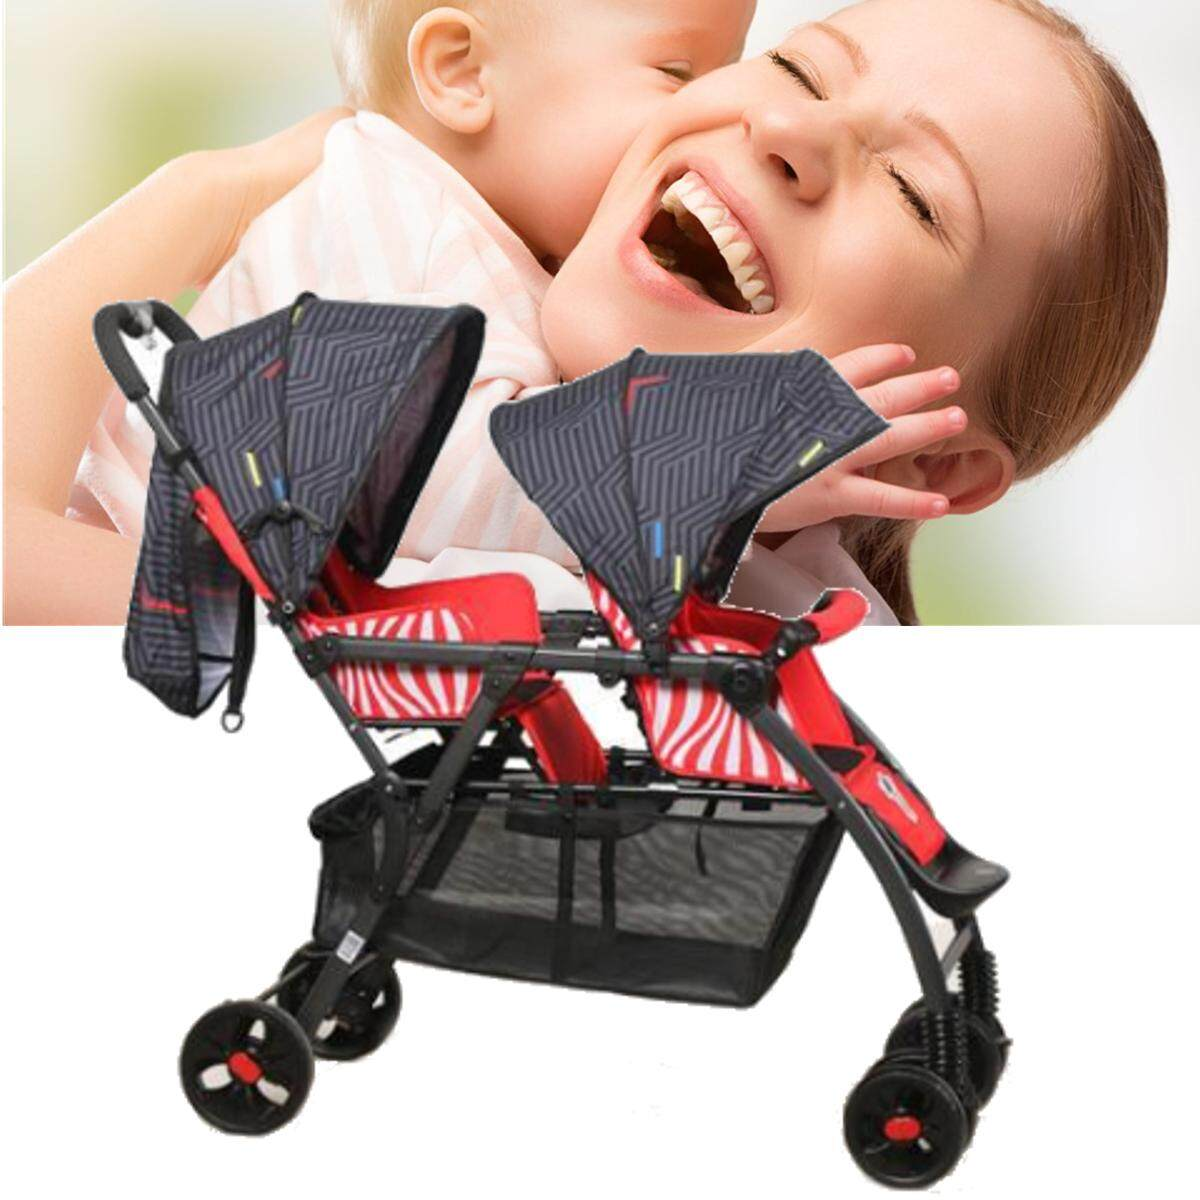 New Cosatto Shuffle Tandem Stroller Double Pushchair Buggy Hipstar - Intl By Elec Mall.